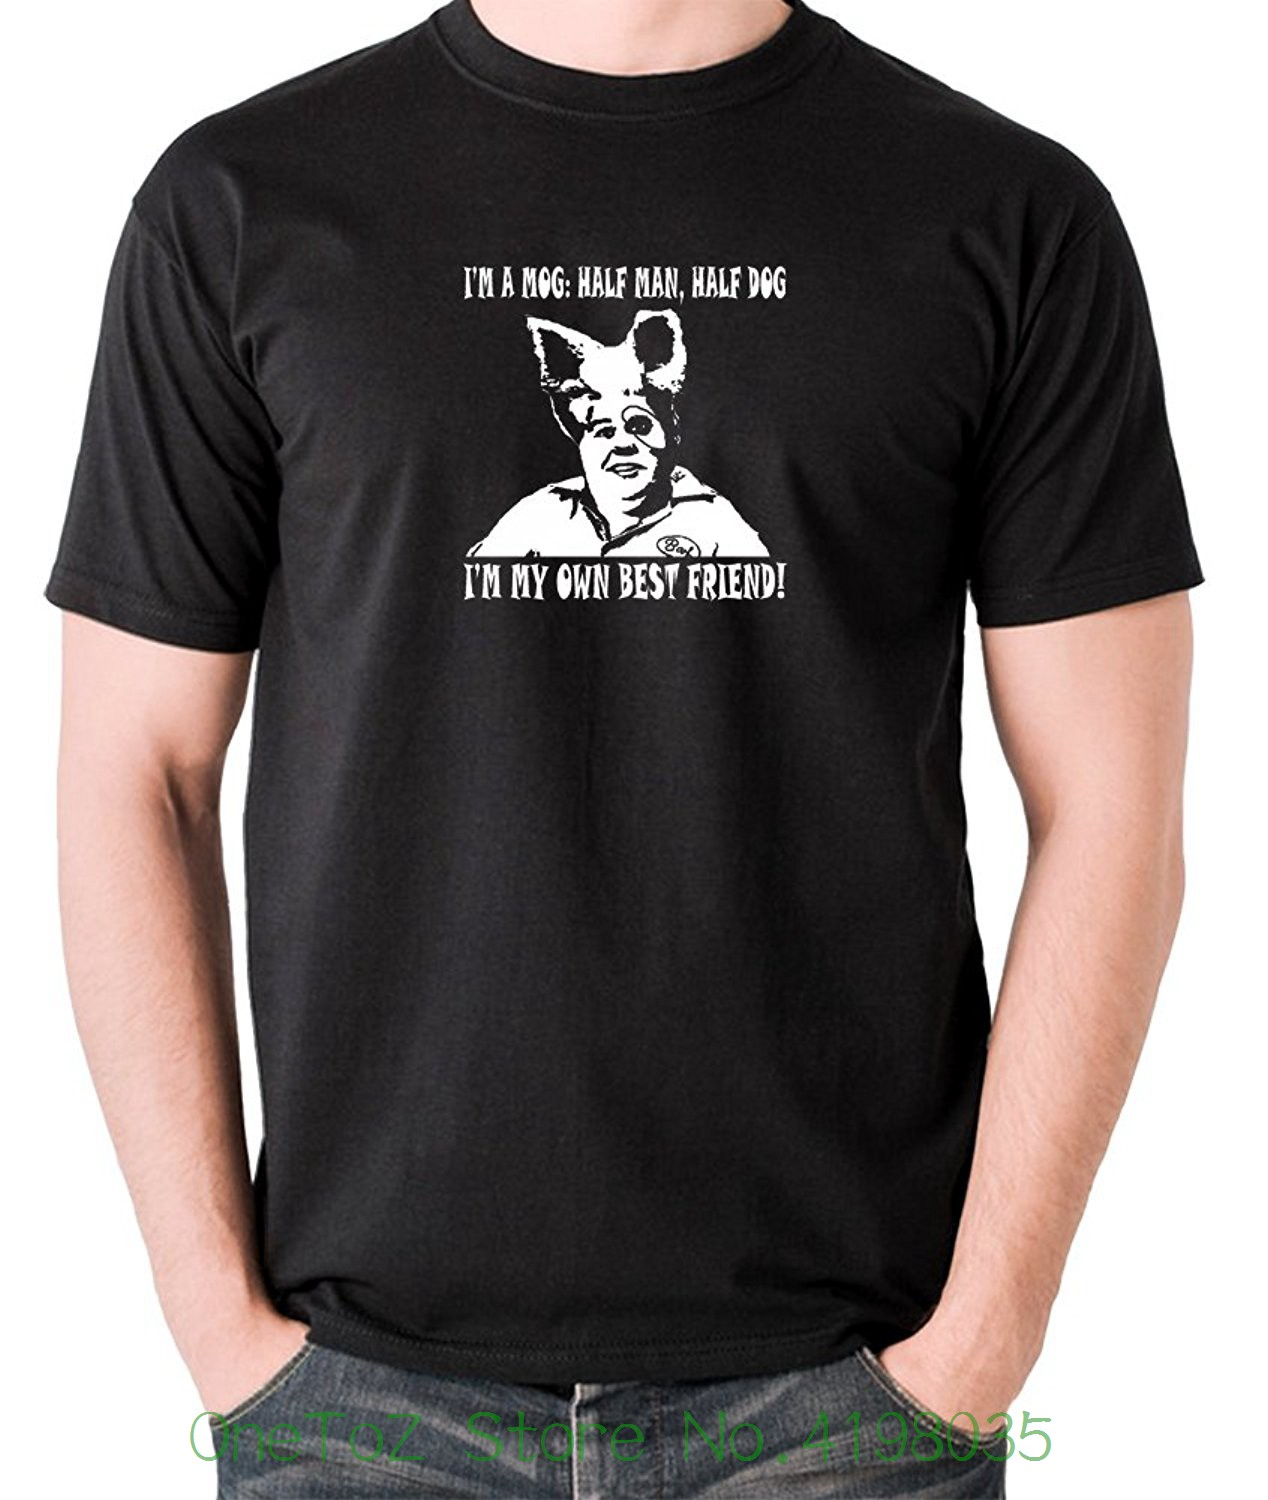 Spaceballs - Barf , Im A Mog : Half Man , Half Dog - Mens T Shirt On Sale New Fashion Summer